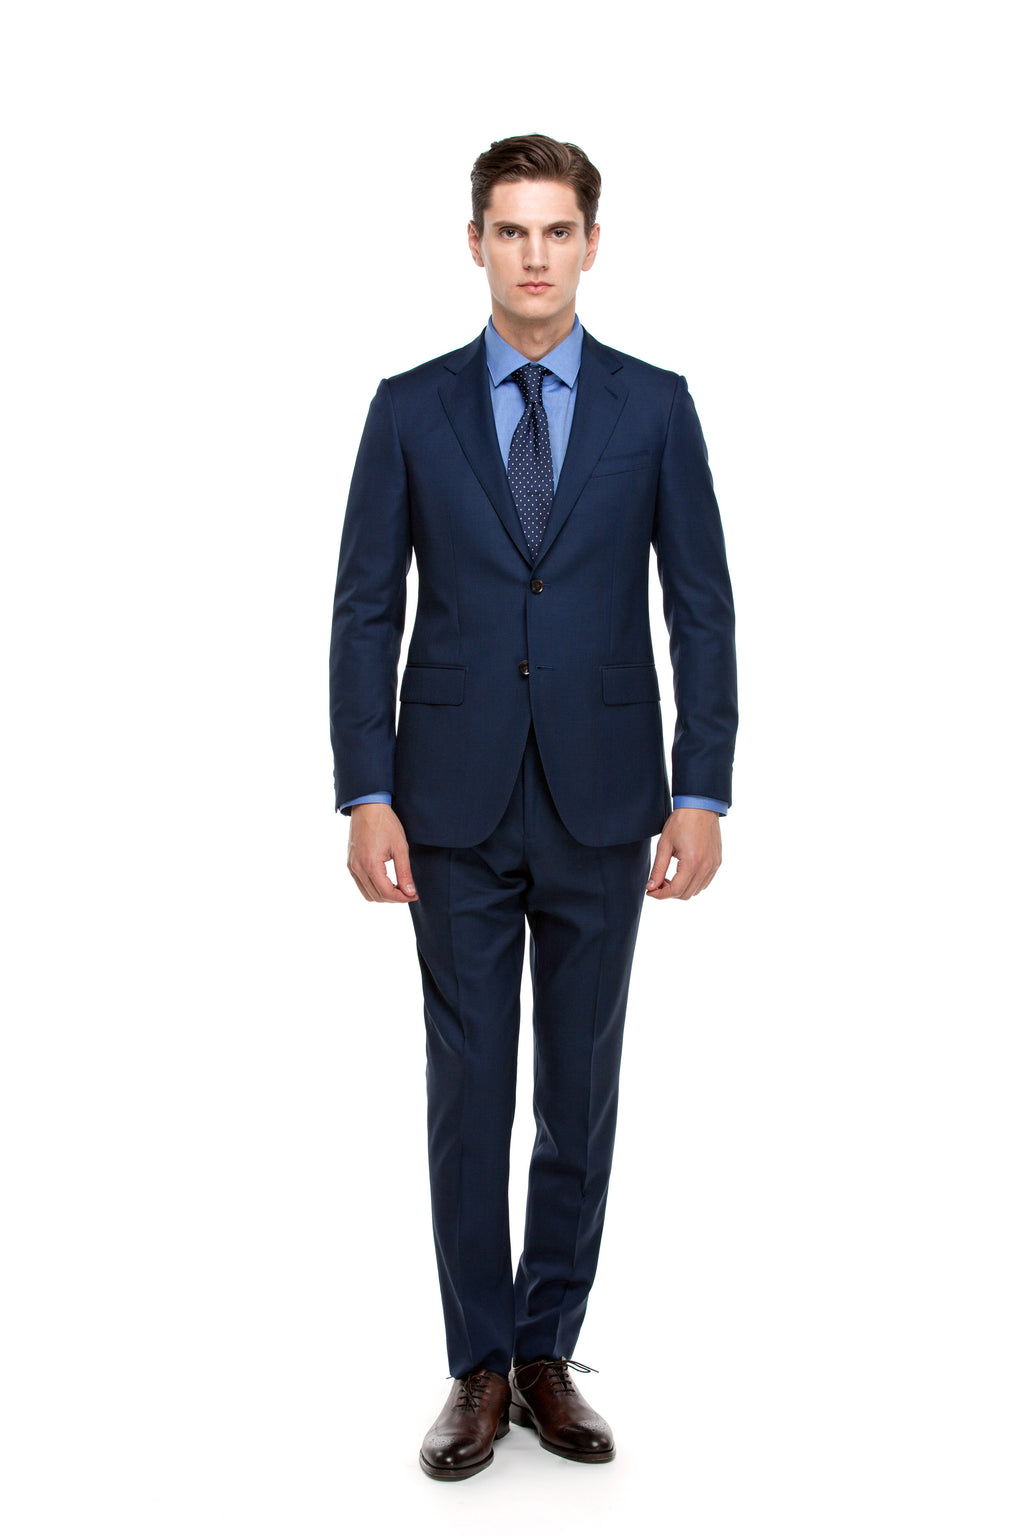 Custom Navy Blue Signature Suit ottotos